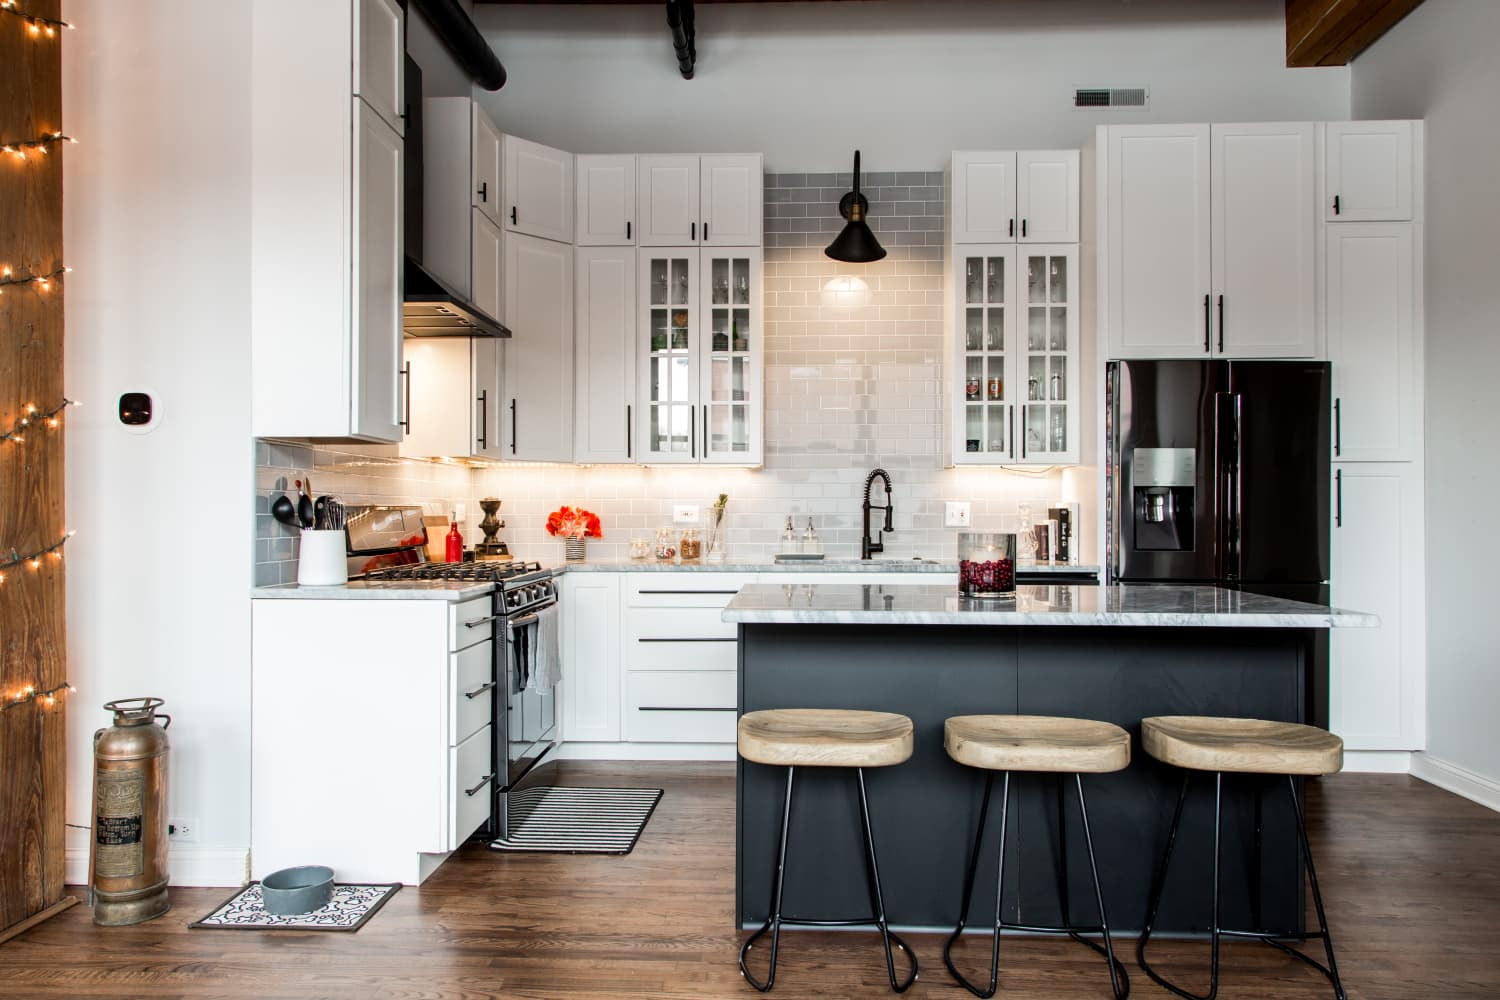 4 Ways to Add Lighting Under Your Cabinets for $35 or Less